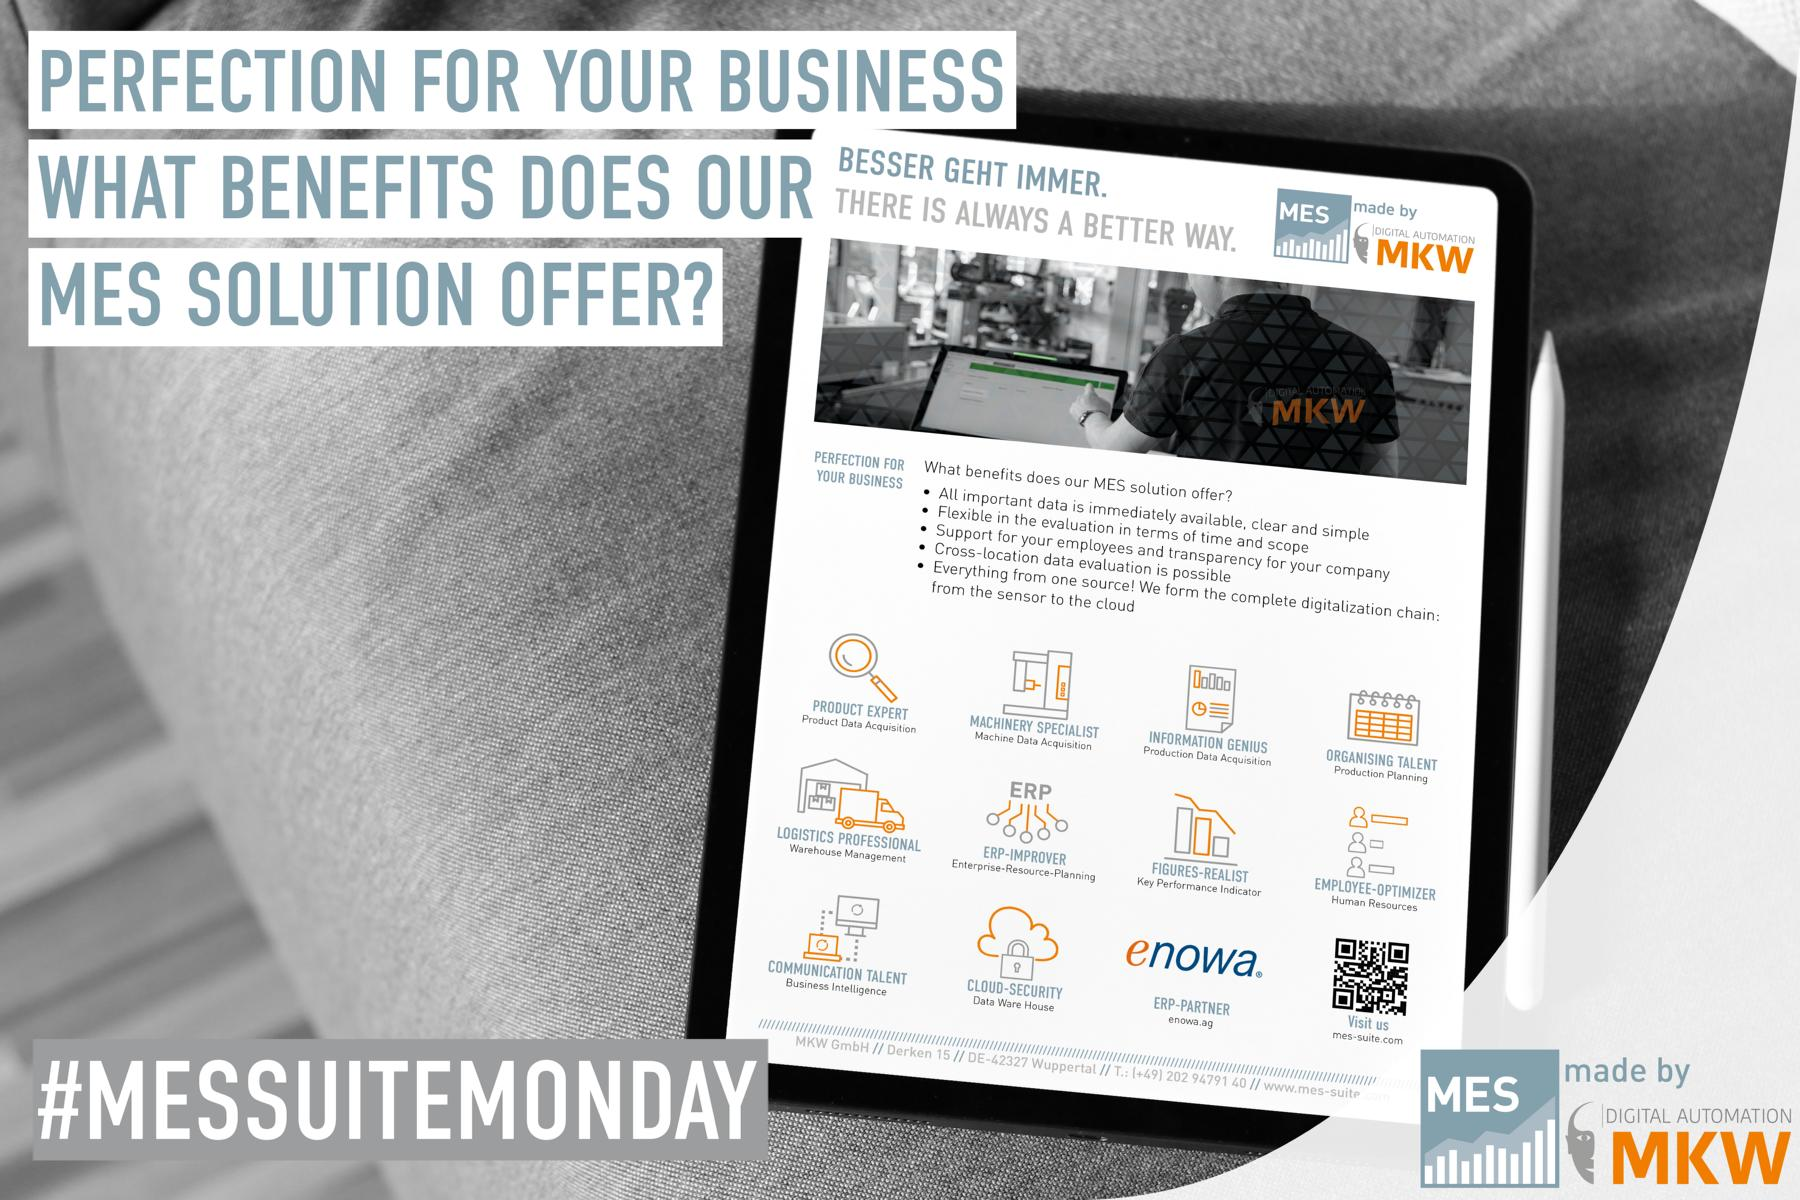 What benefits does our MES solution offer?